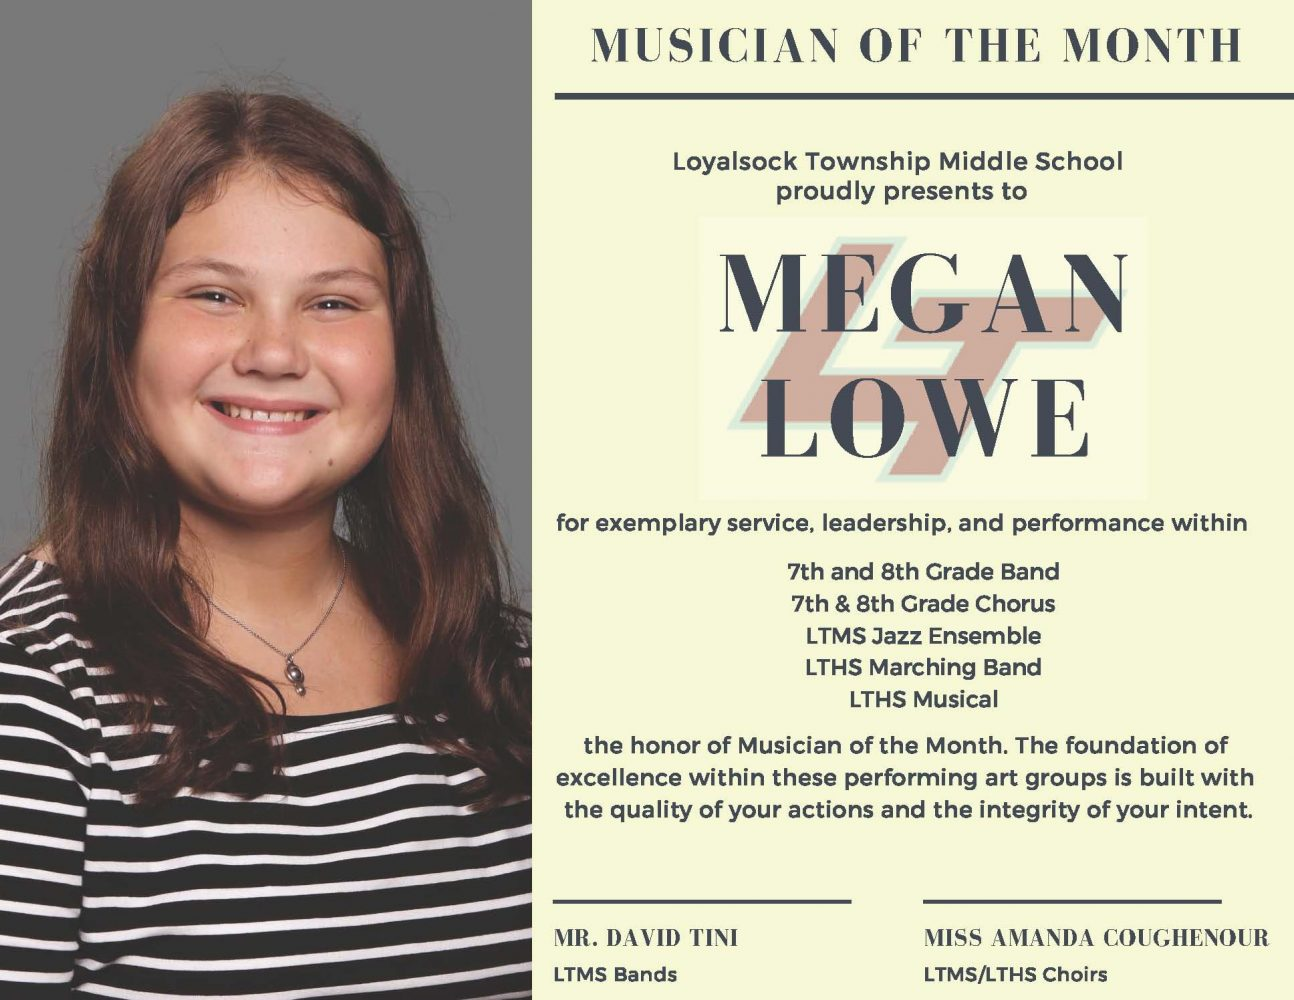 Megan Lowe/January 2019 Musician of The Month